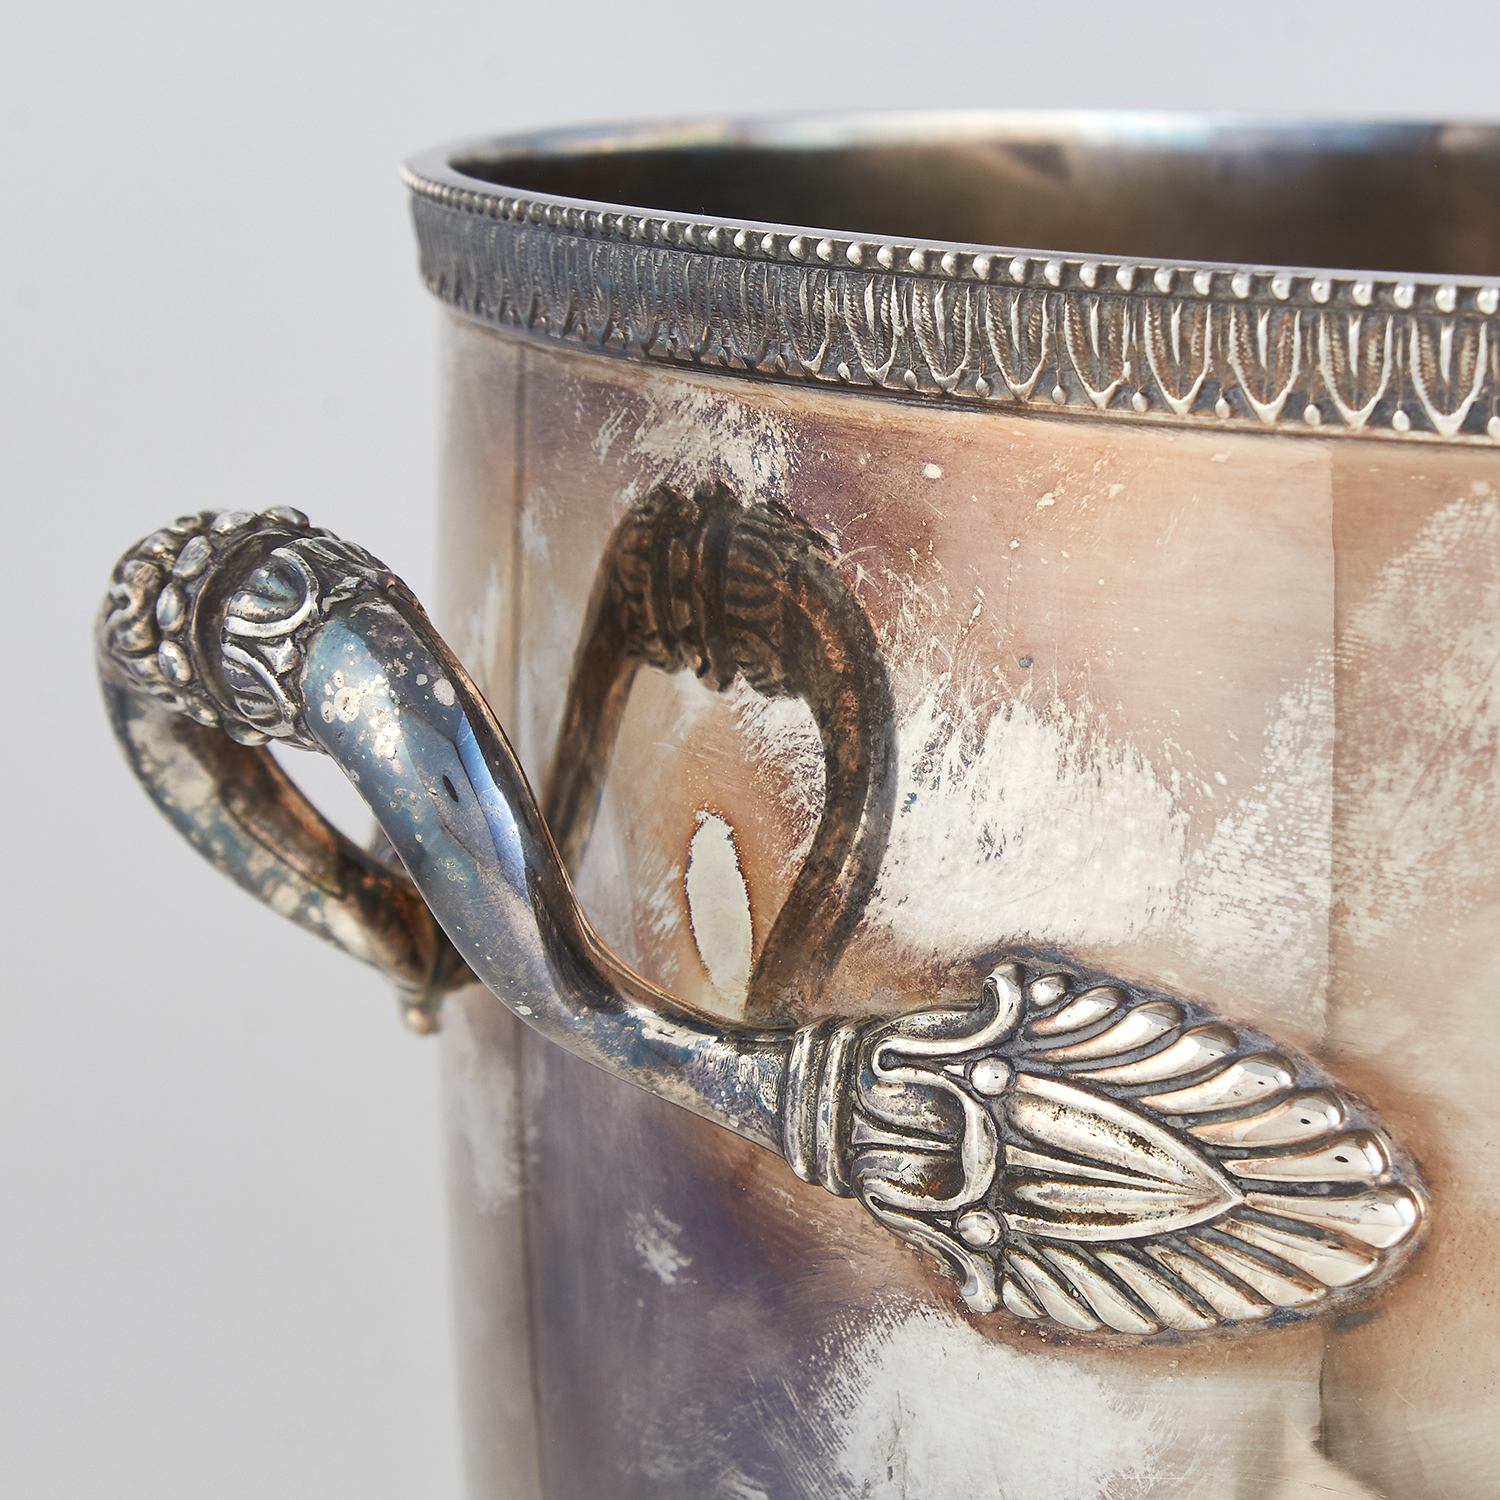 VINTAGE ITALIAN SILVER WINE COOLER BY CALDERONI, CIRCA 1960 the tapering body in plain design, - Image 3 of 4